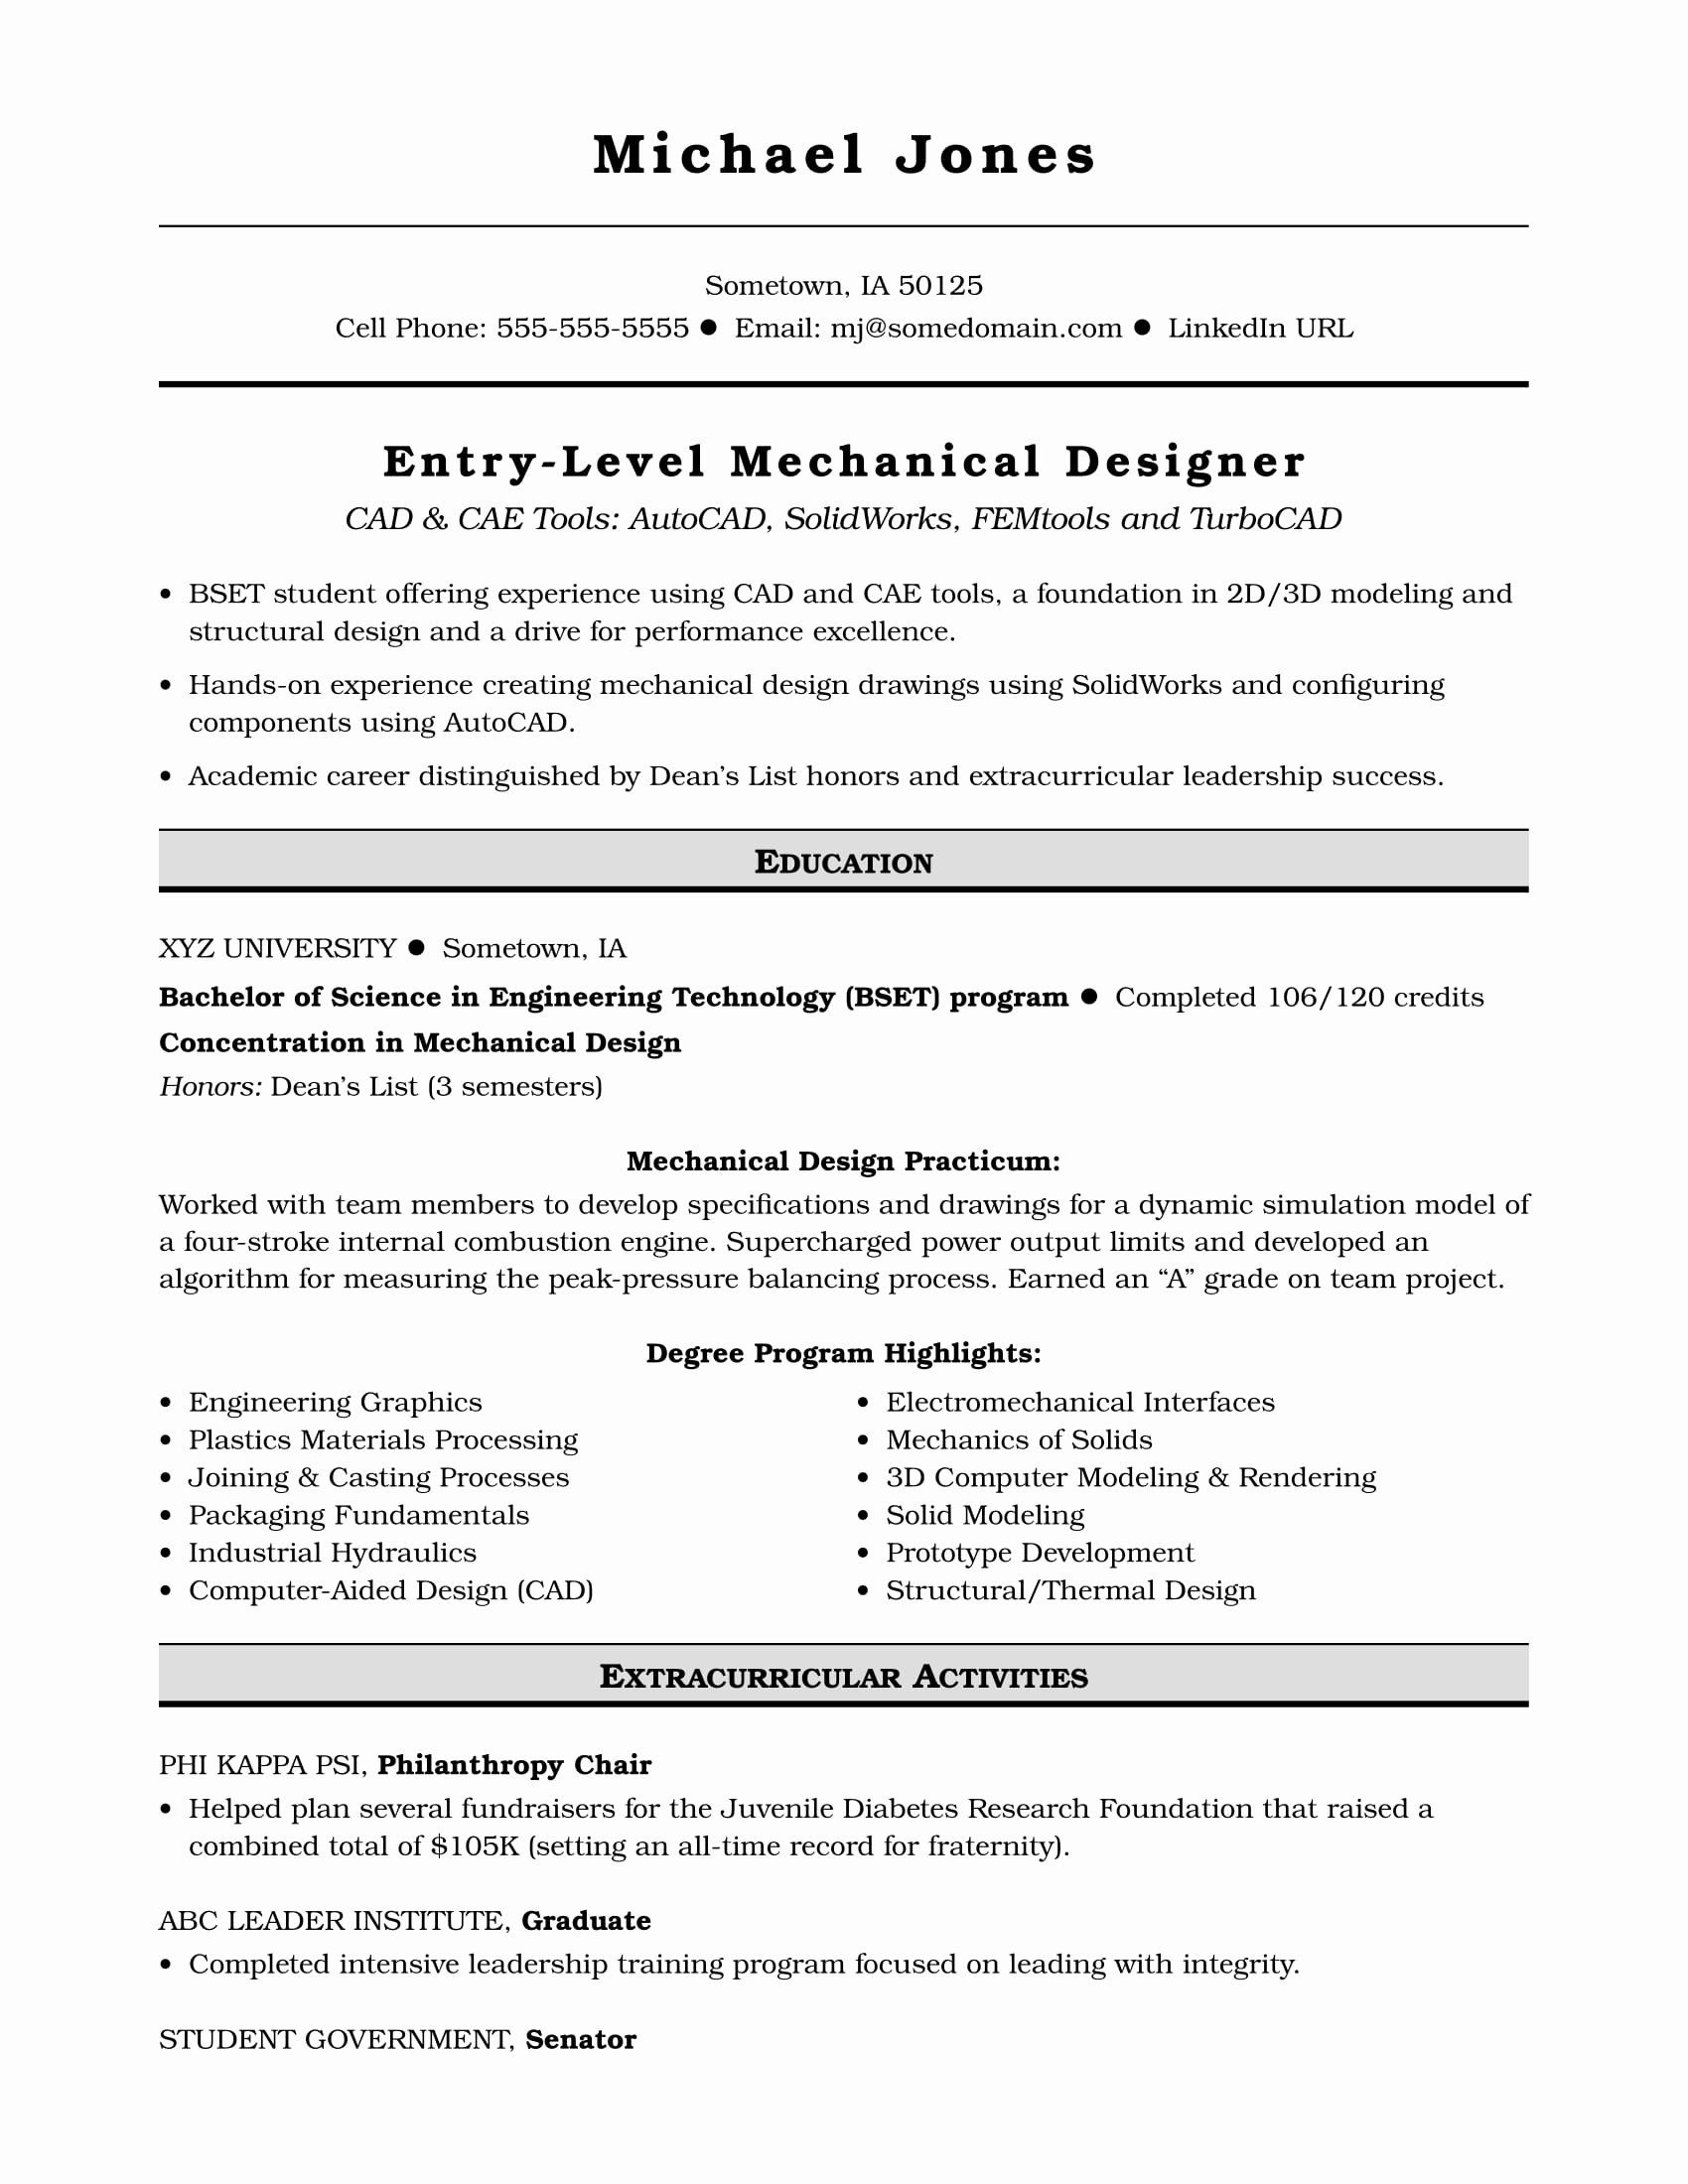 entry level software engineer resume new sample for an mechanical designer in engineering Resume Entry Level Software Engineer Resume Sample